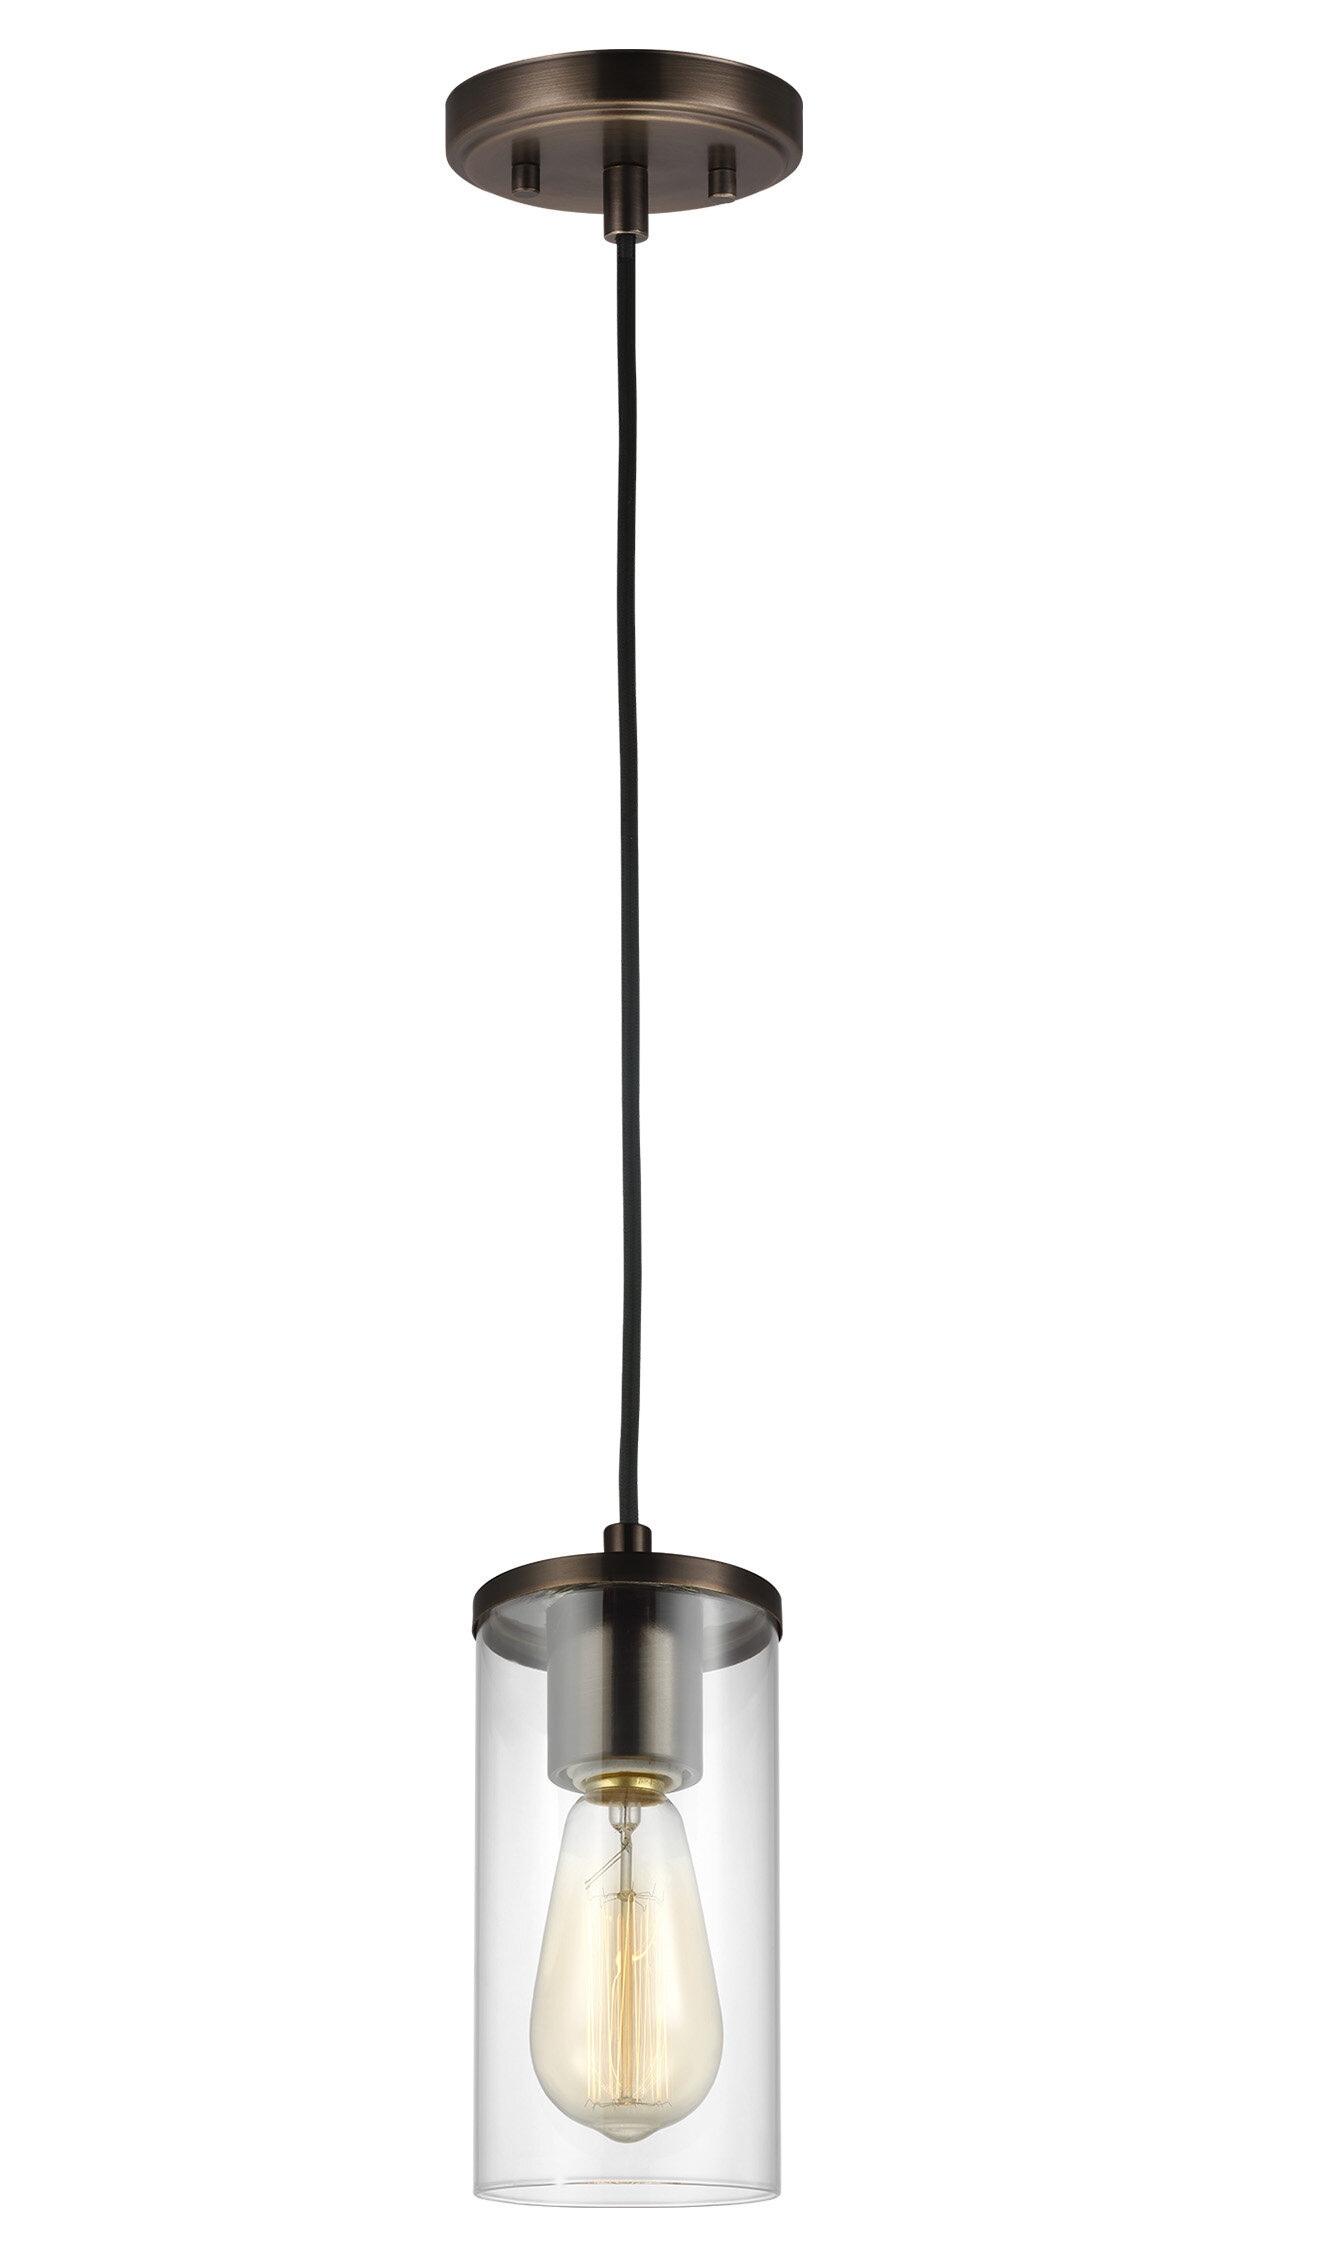 Tallapoosa 1-Light Single Cylinder Pendant with Jayce 1-Light Cylinder Pendants (Image 27 of 30)